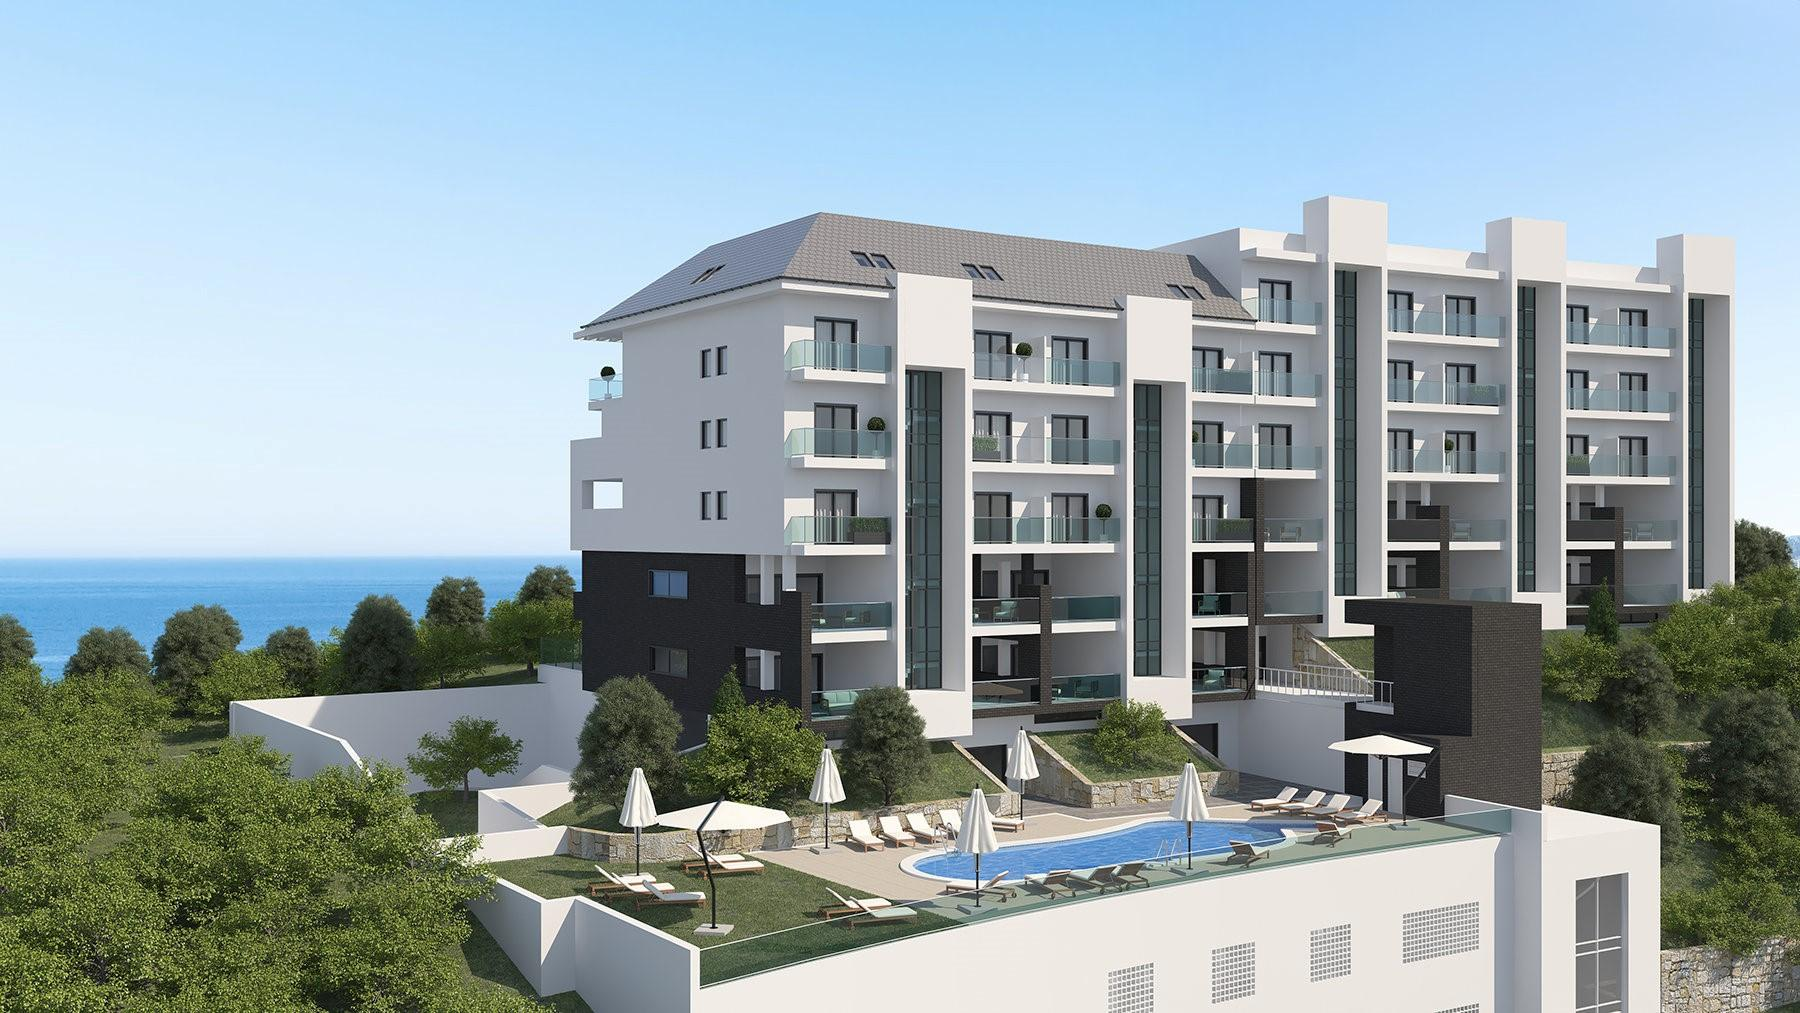 Moderne appartementen loopafstand strand en de haven, La Duquesa